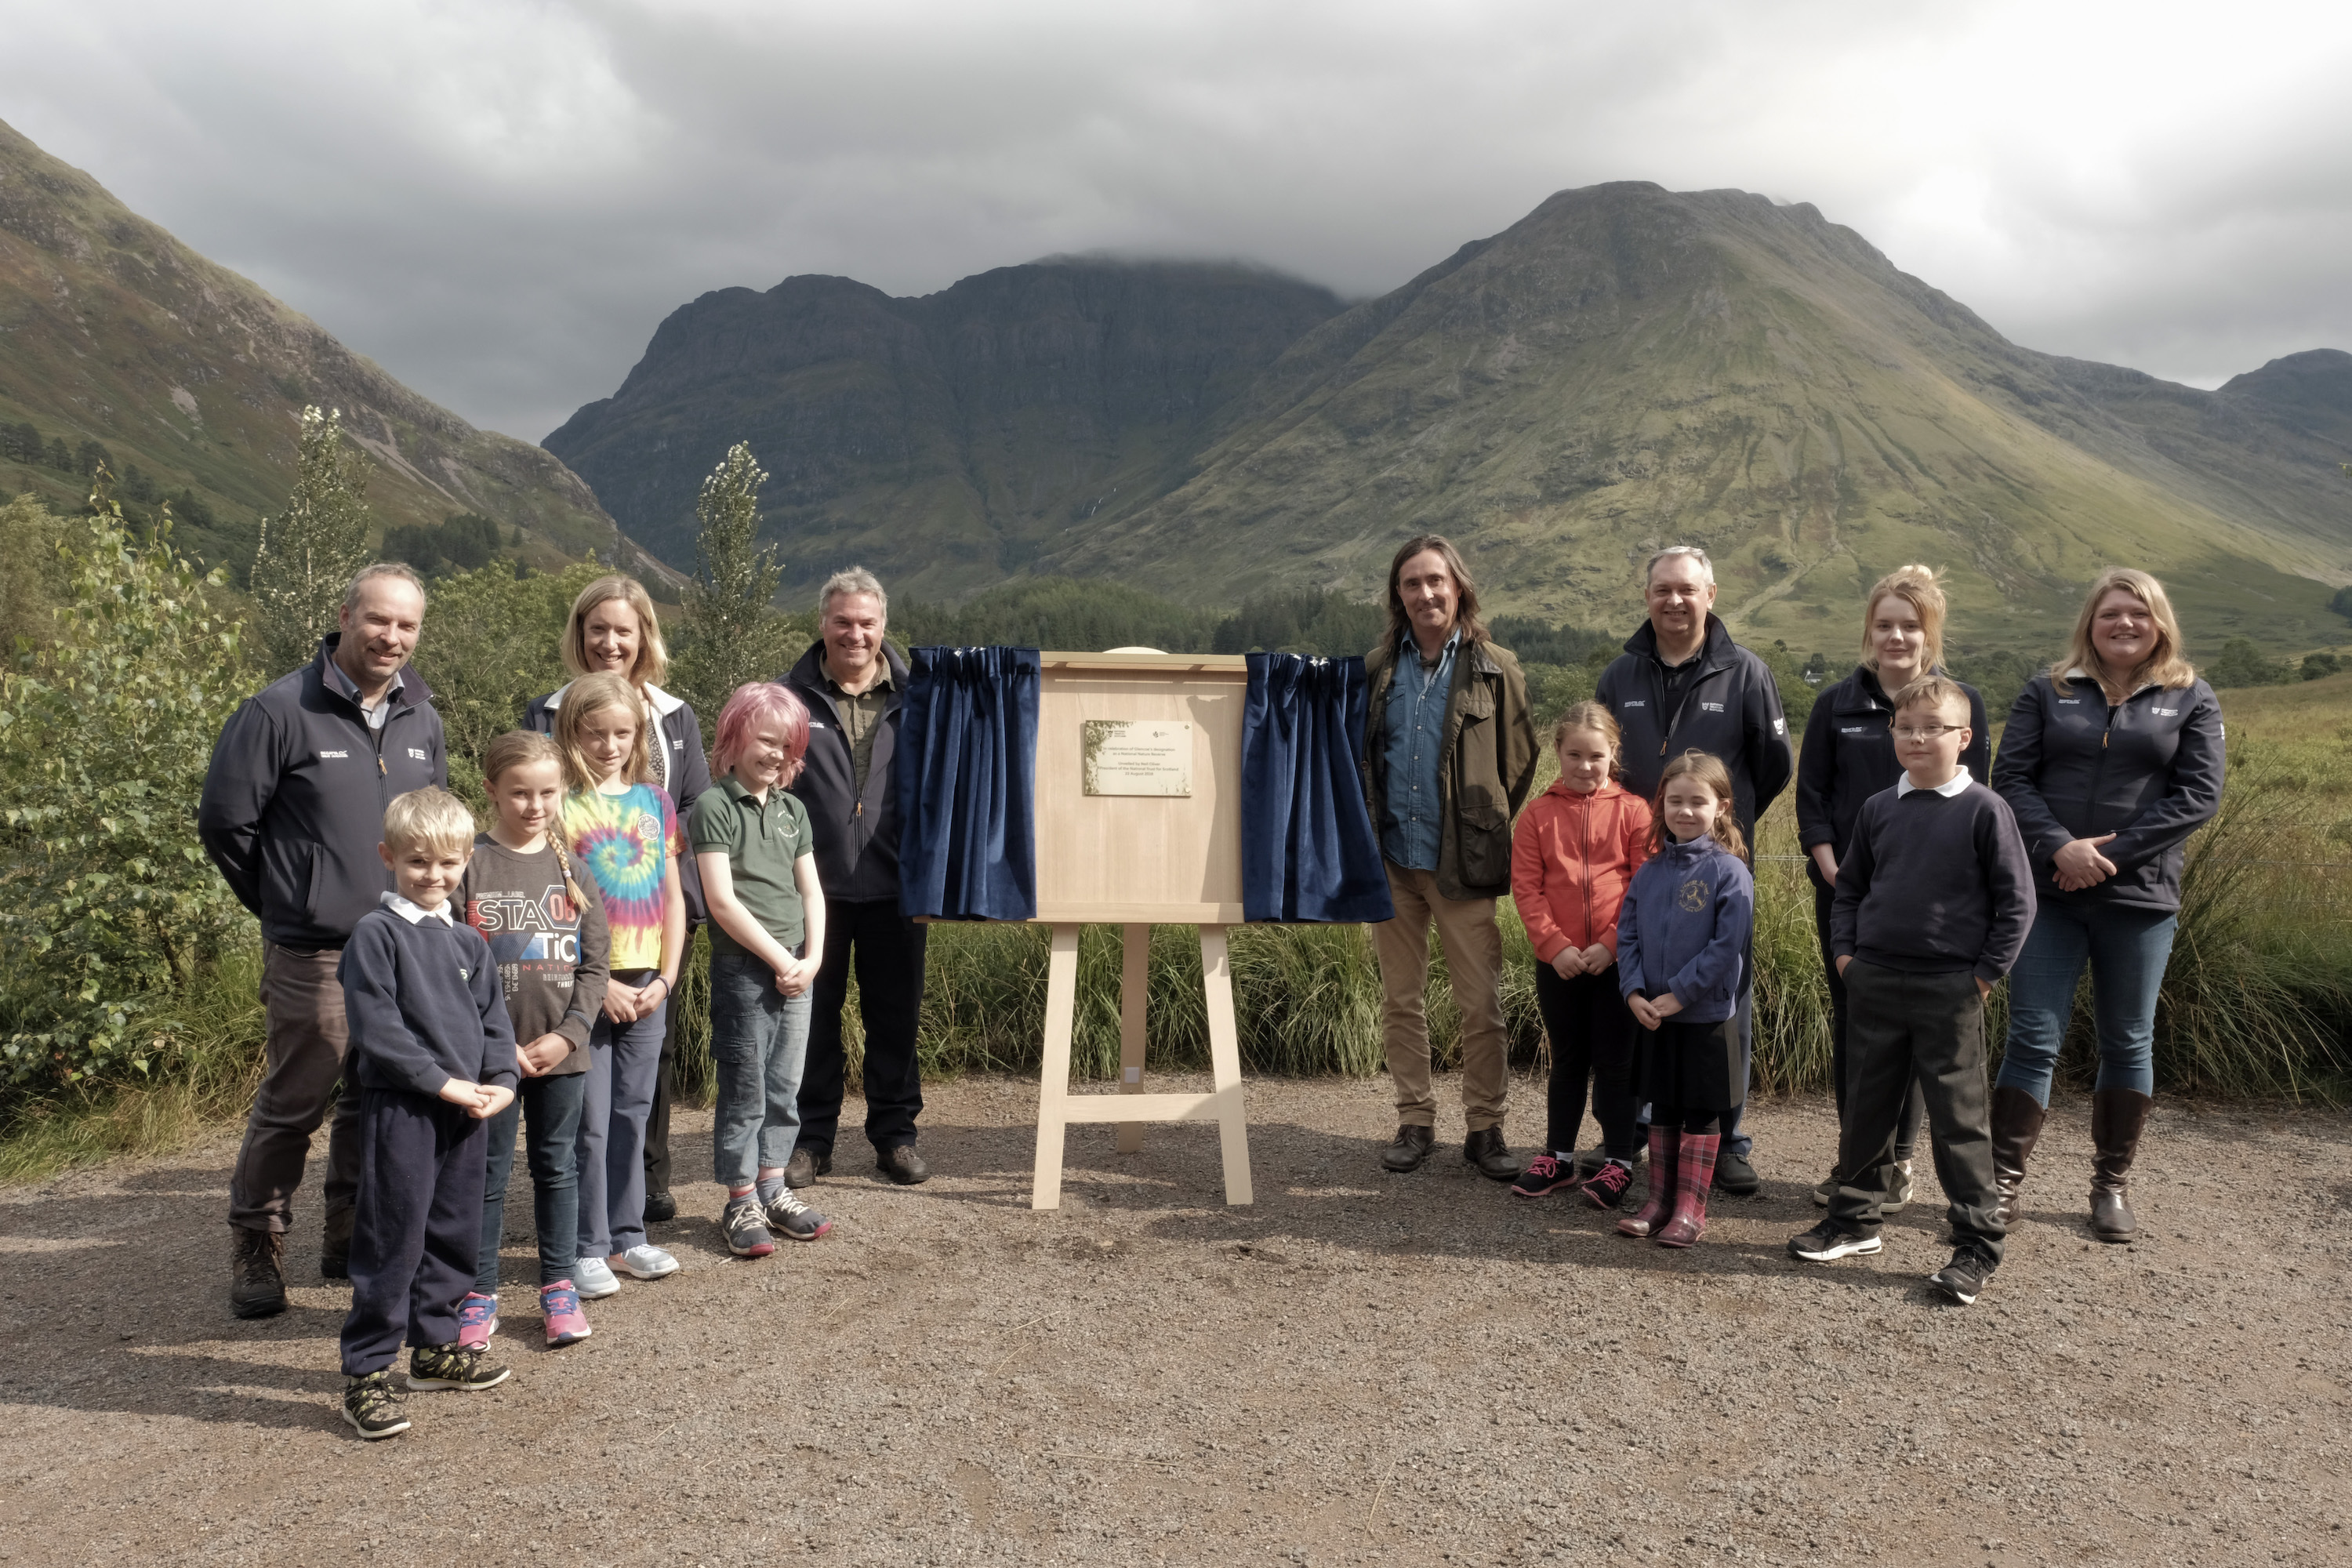 Neil Oliver visited Glencoe to recognise it as a National Nature Reserve